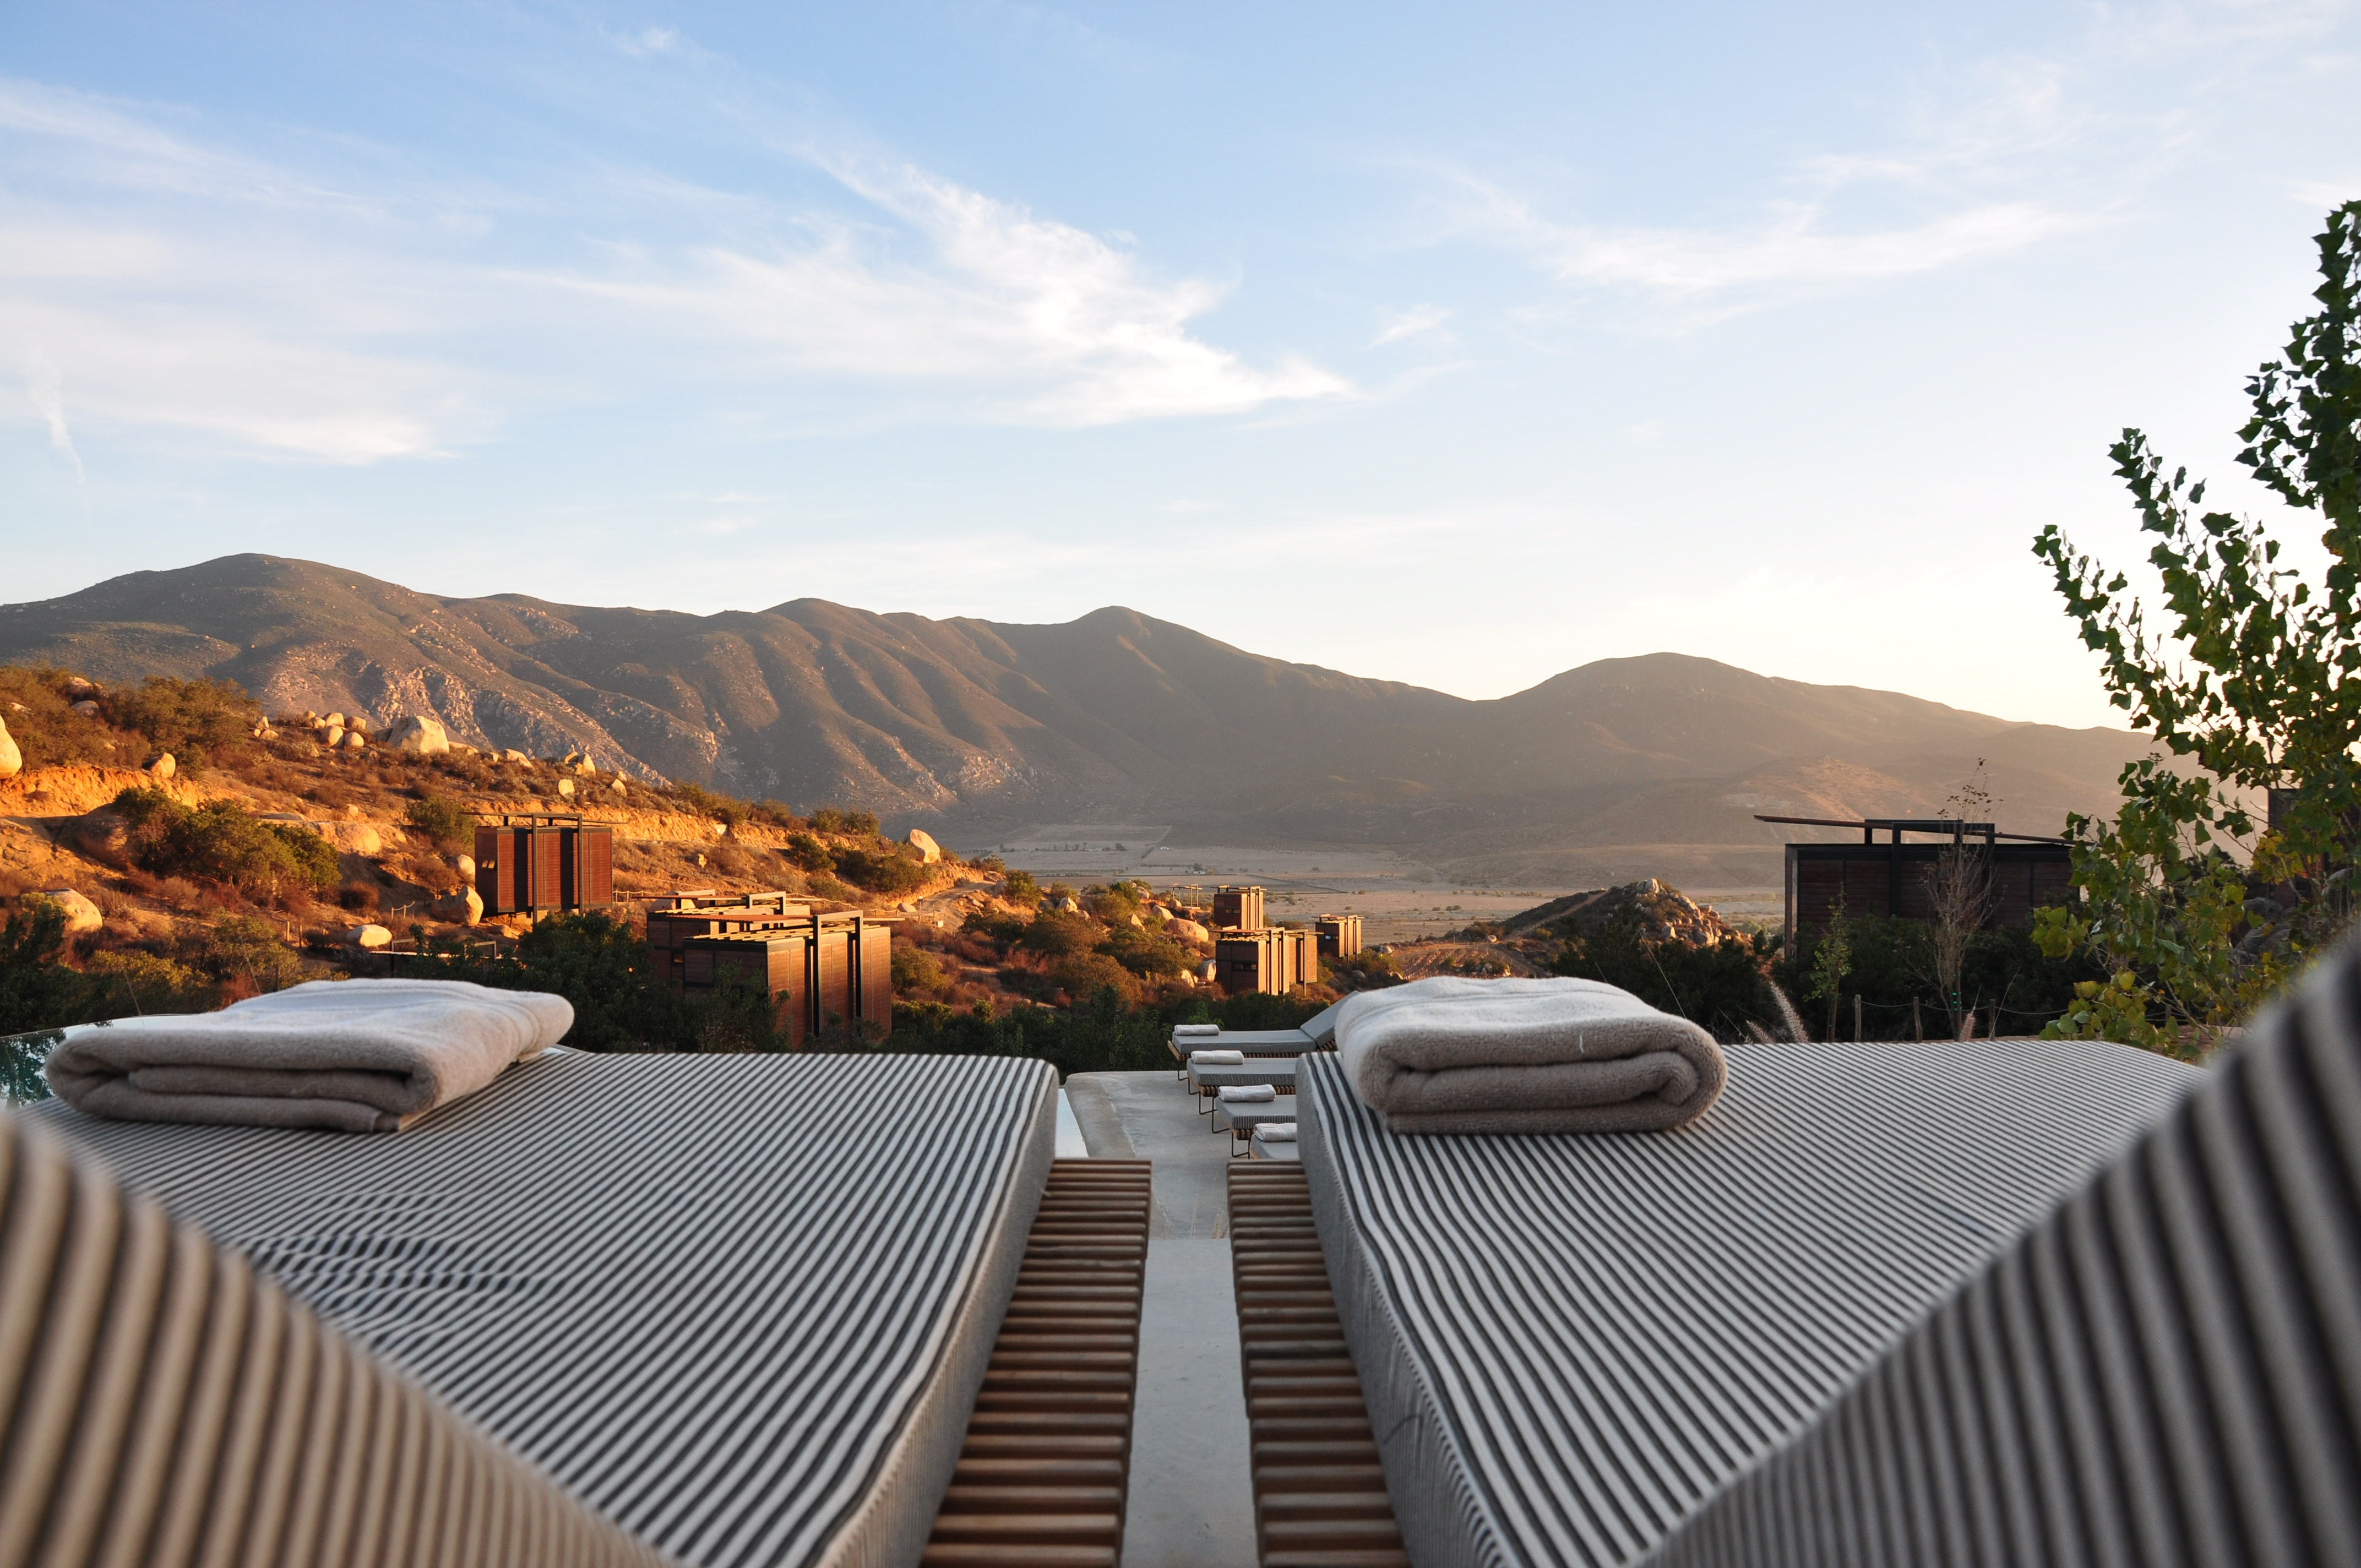 sunloungers fronting buildings near mountain